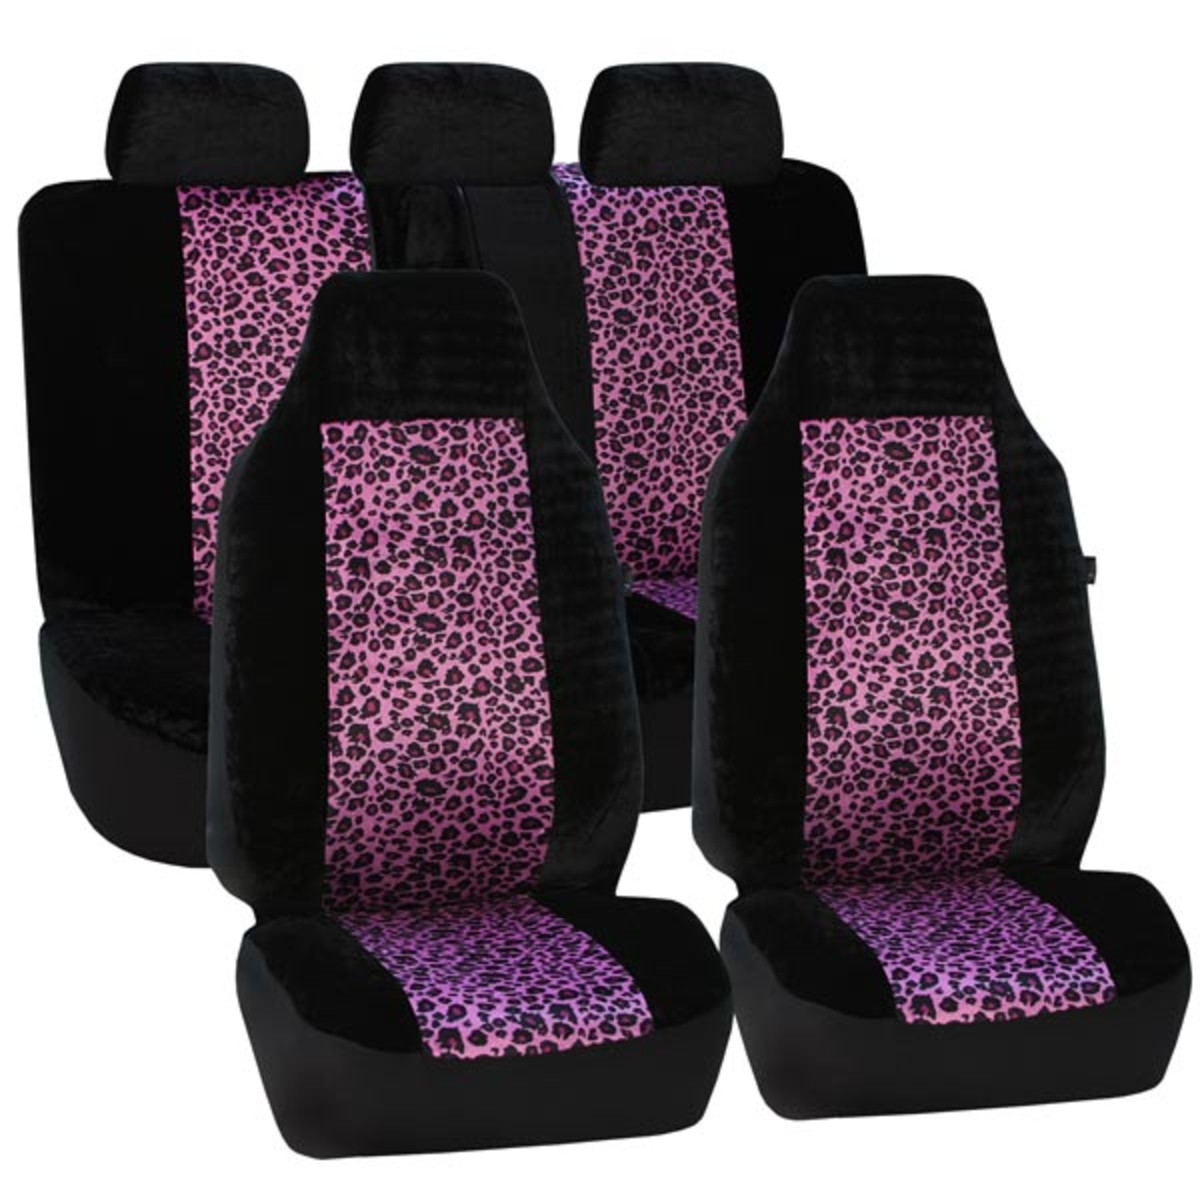 88-FB126115 2tone purple leopard 1